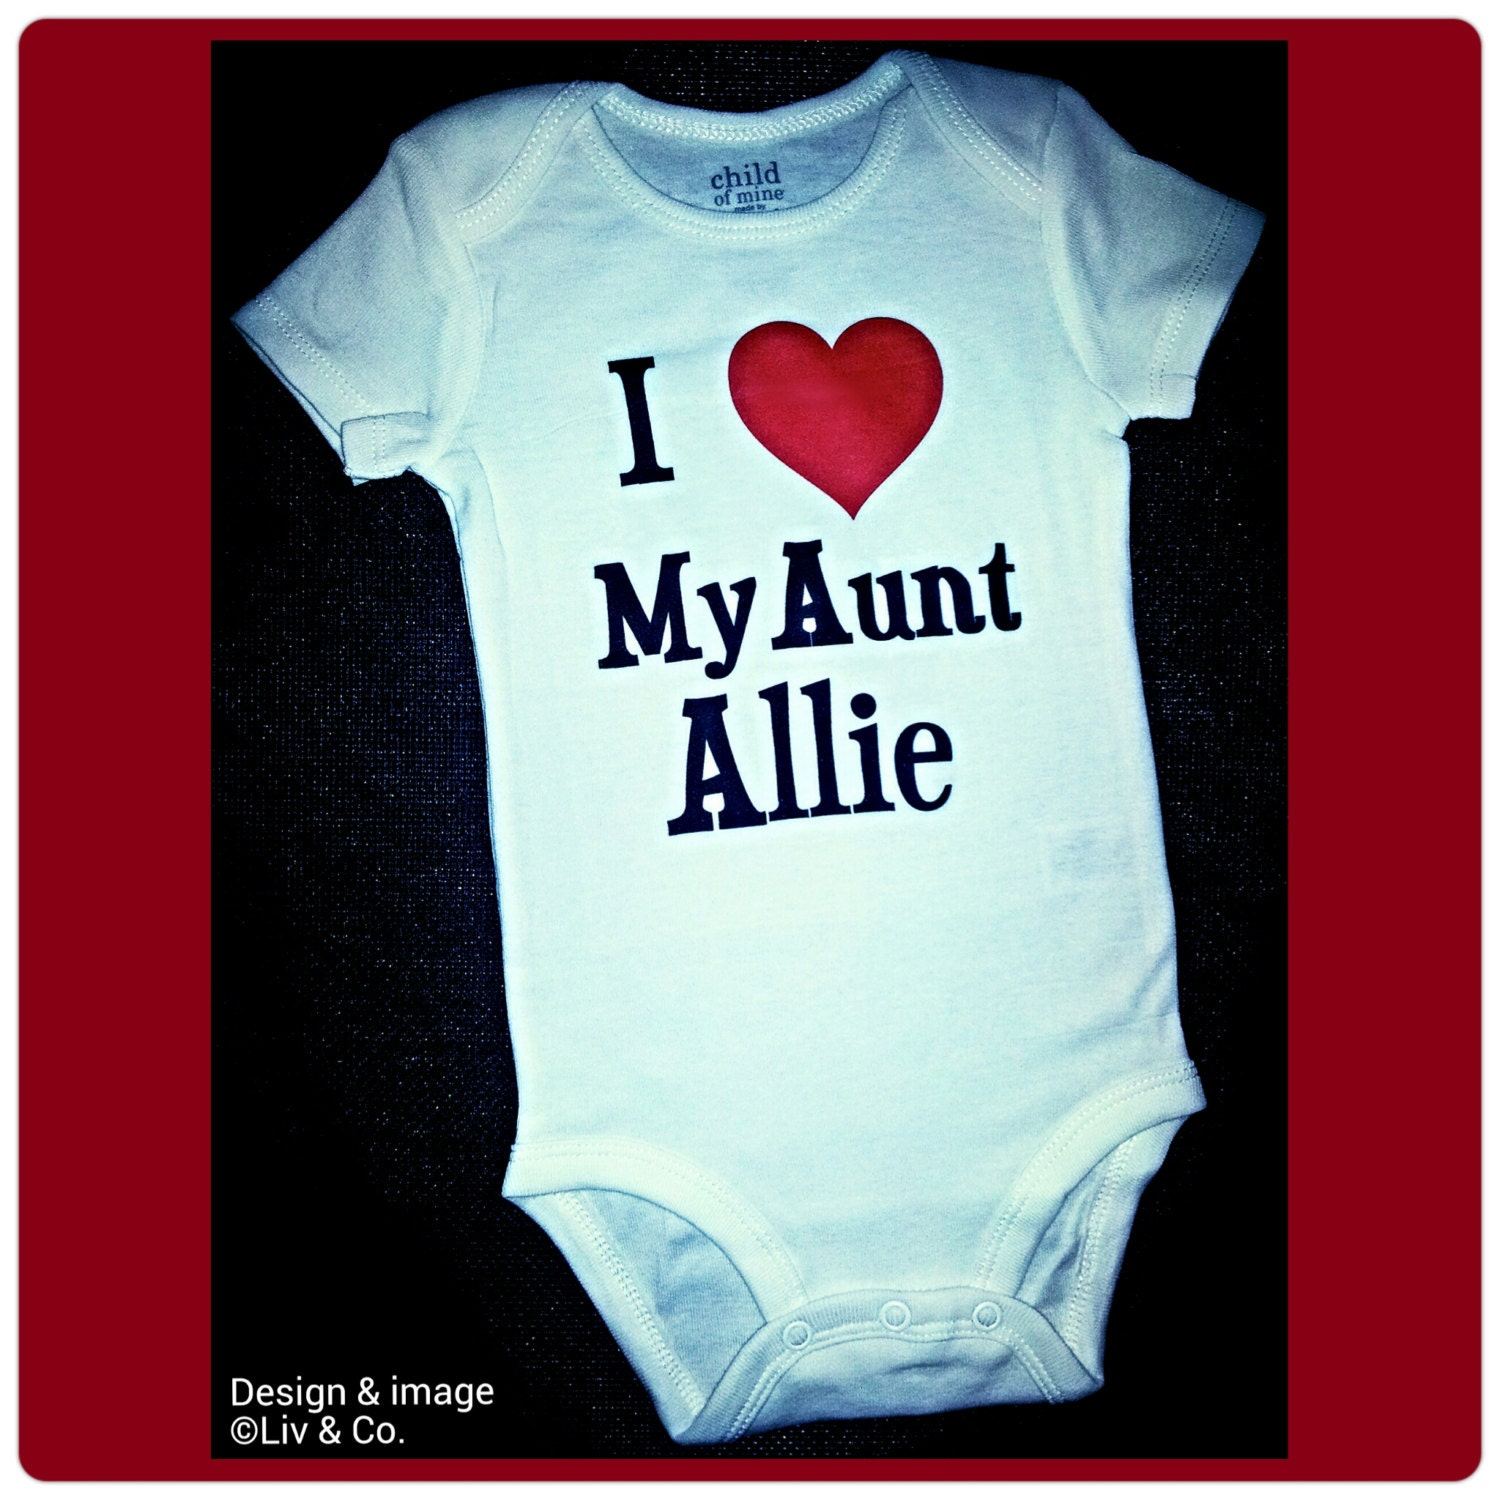 I love my aunt or auntie baby clothes baby one piece baby